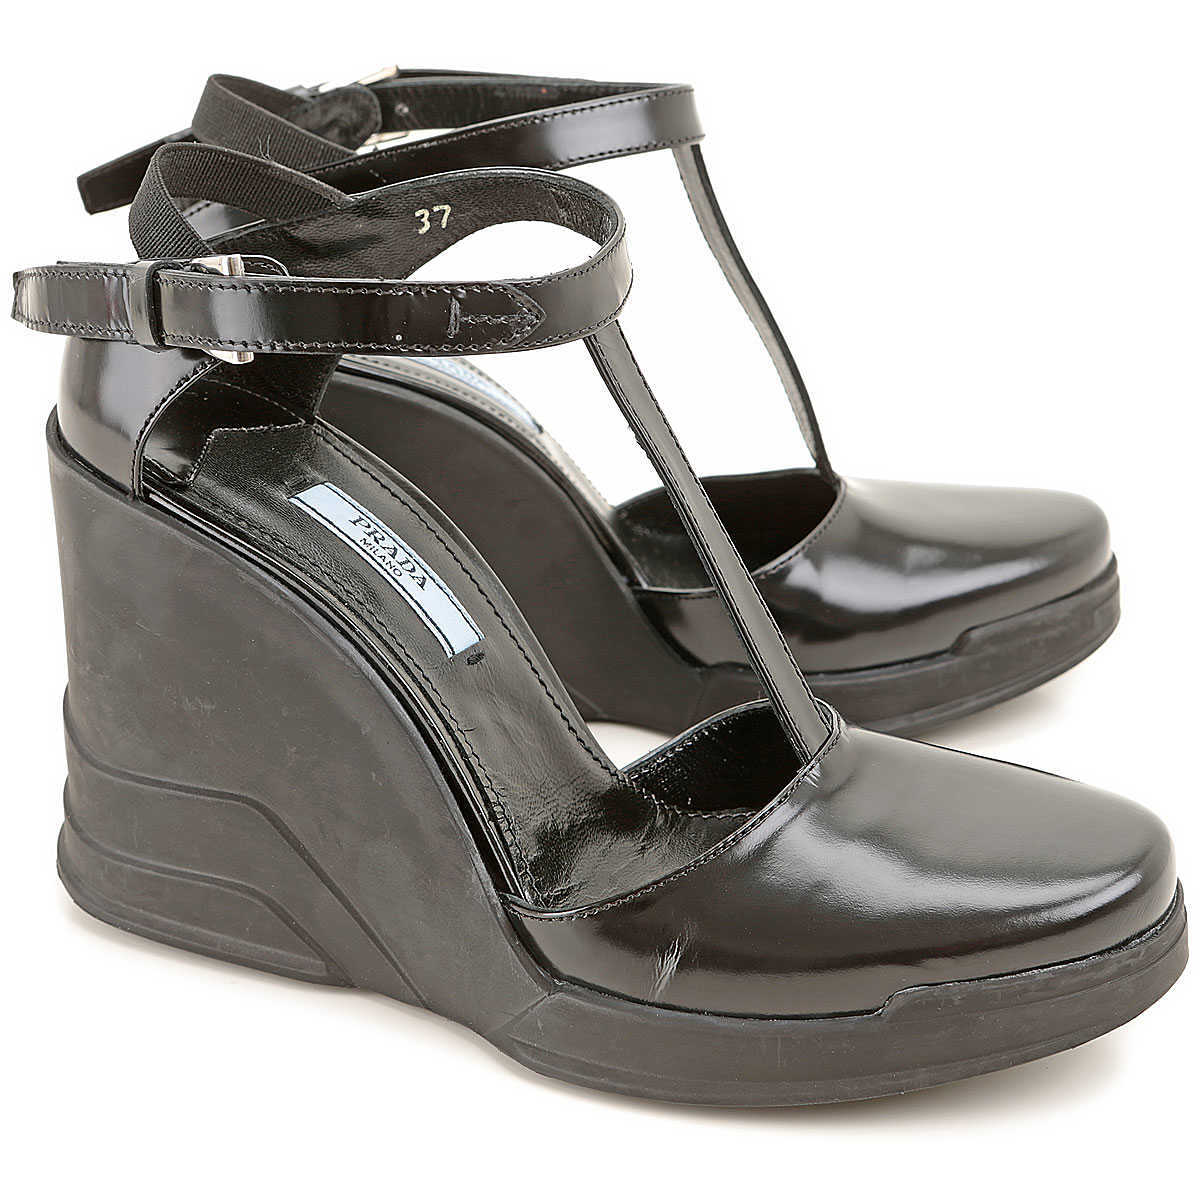 Prada Wedges for Women in Outlet Black Canada - GOOFASH - Womens HOUSE SHOES